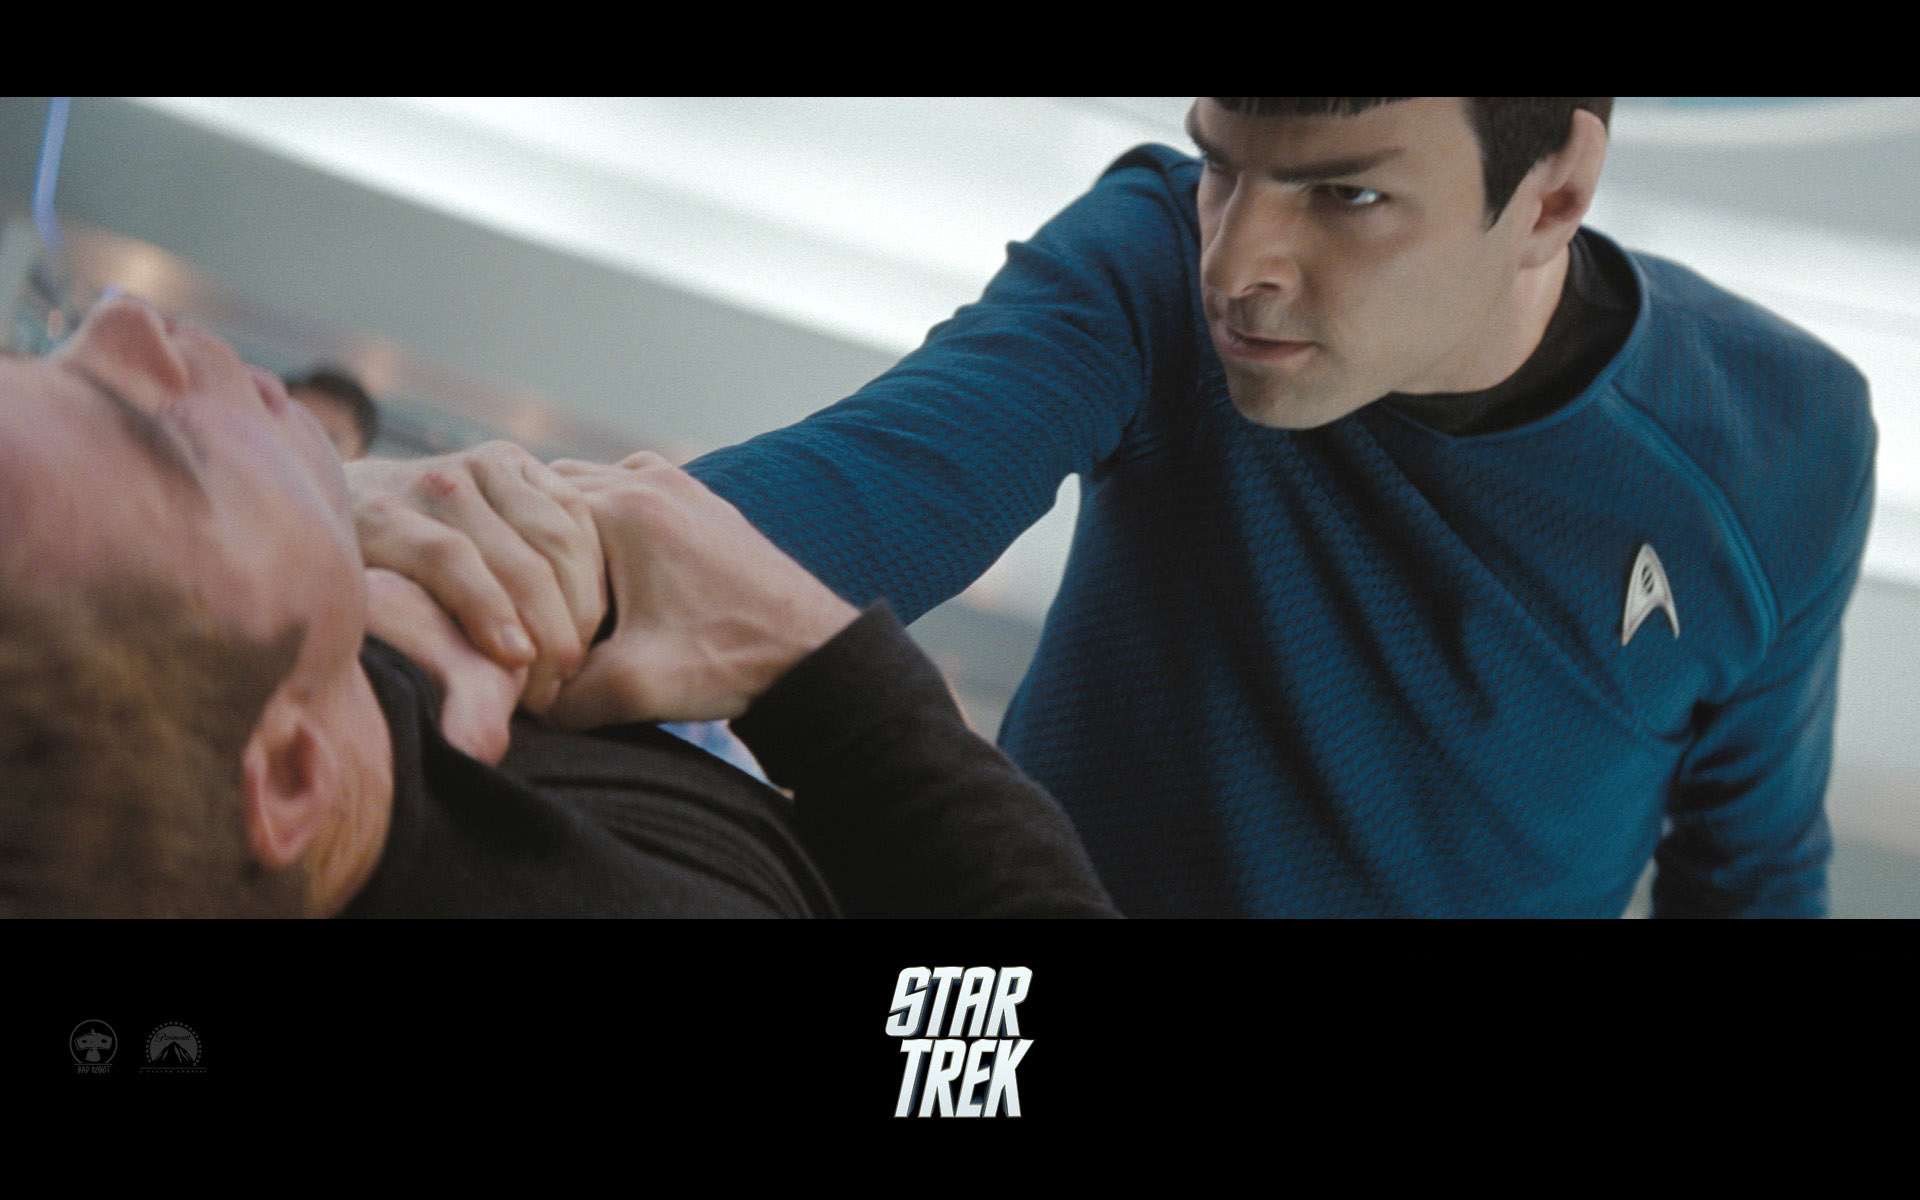 Wallpaper Star Trek Zachary Quinto énervé - Spock